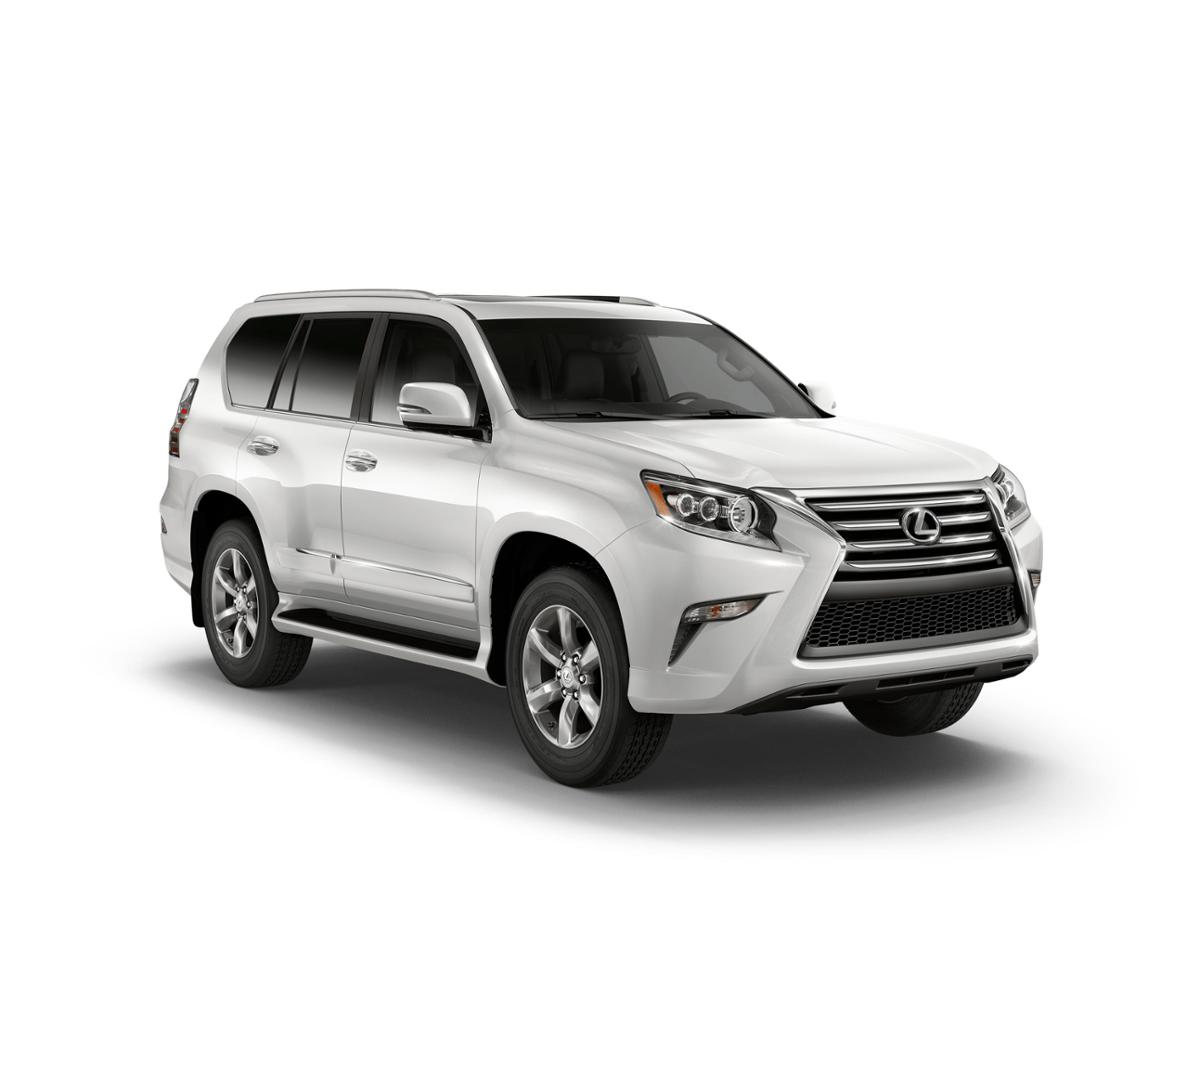 2018 Lexus GX 460 Vehicle Photo in Merriam, KS 66203